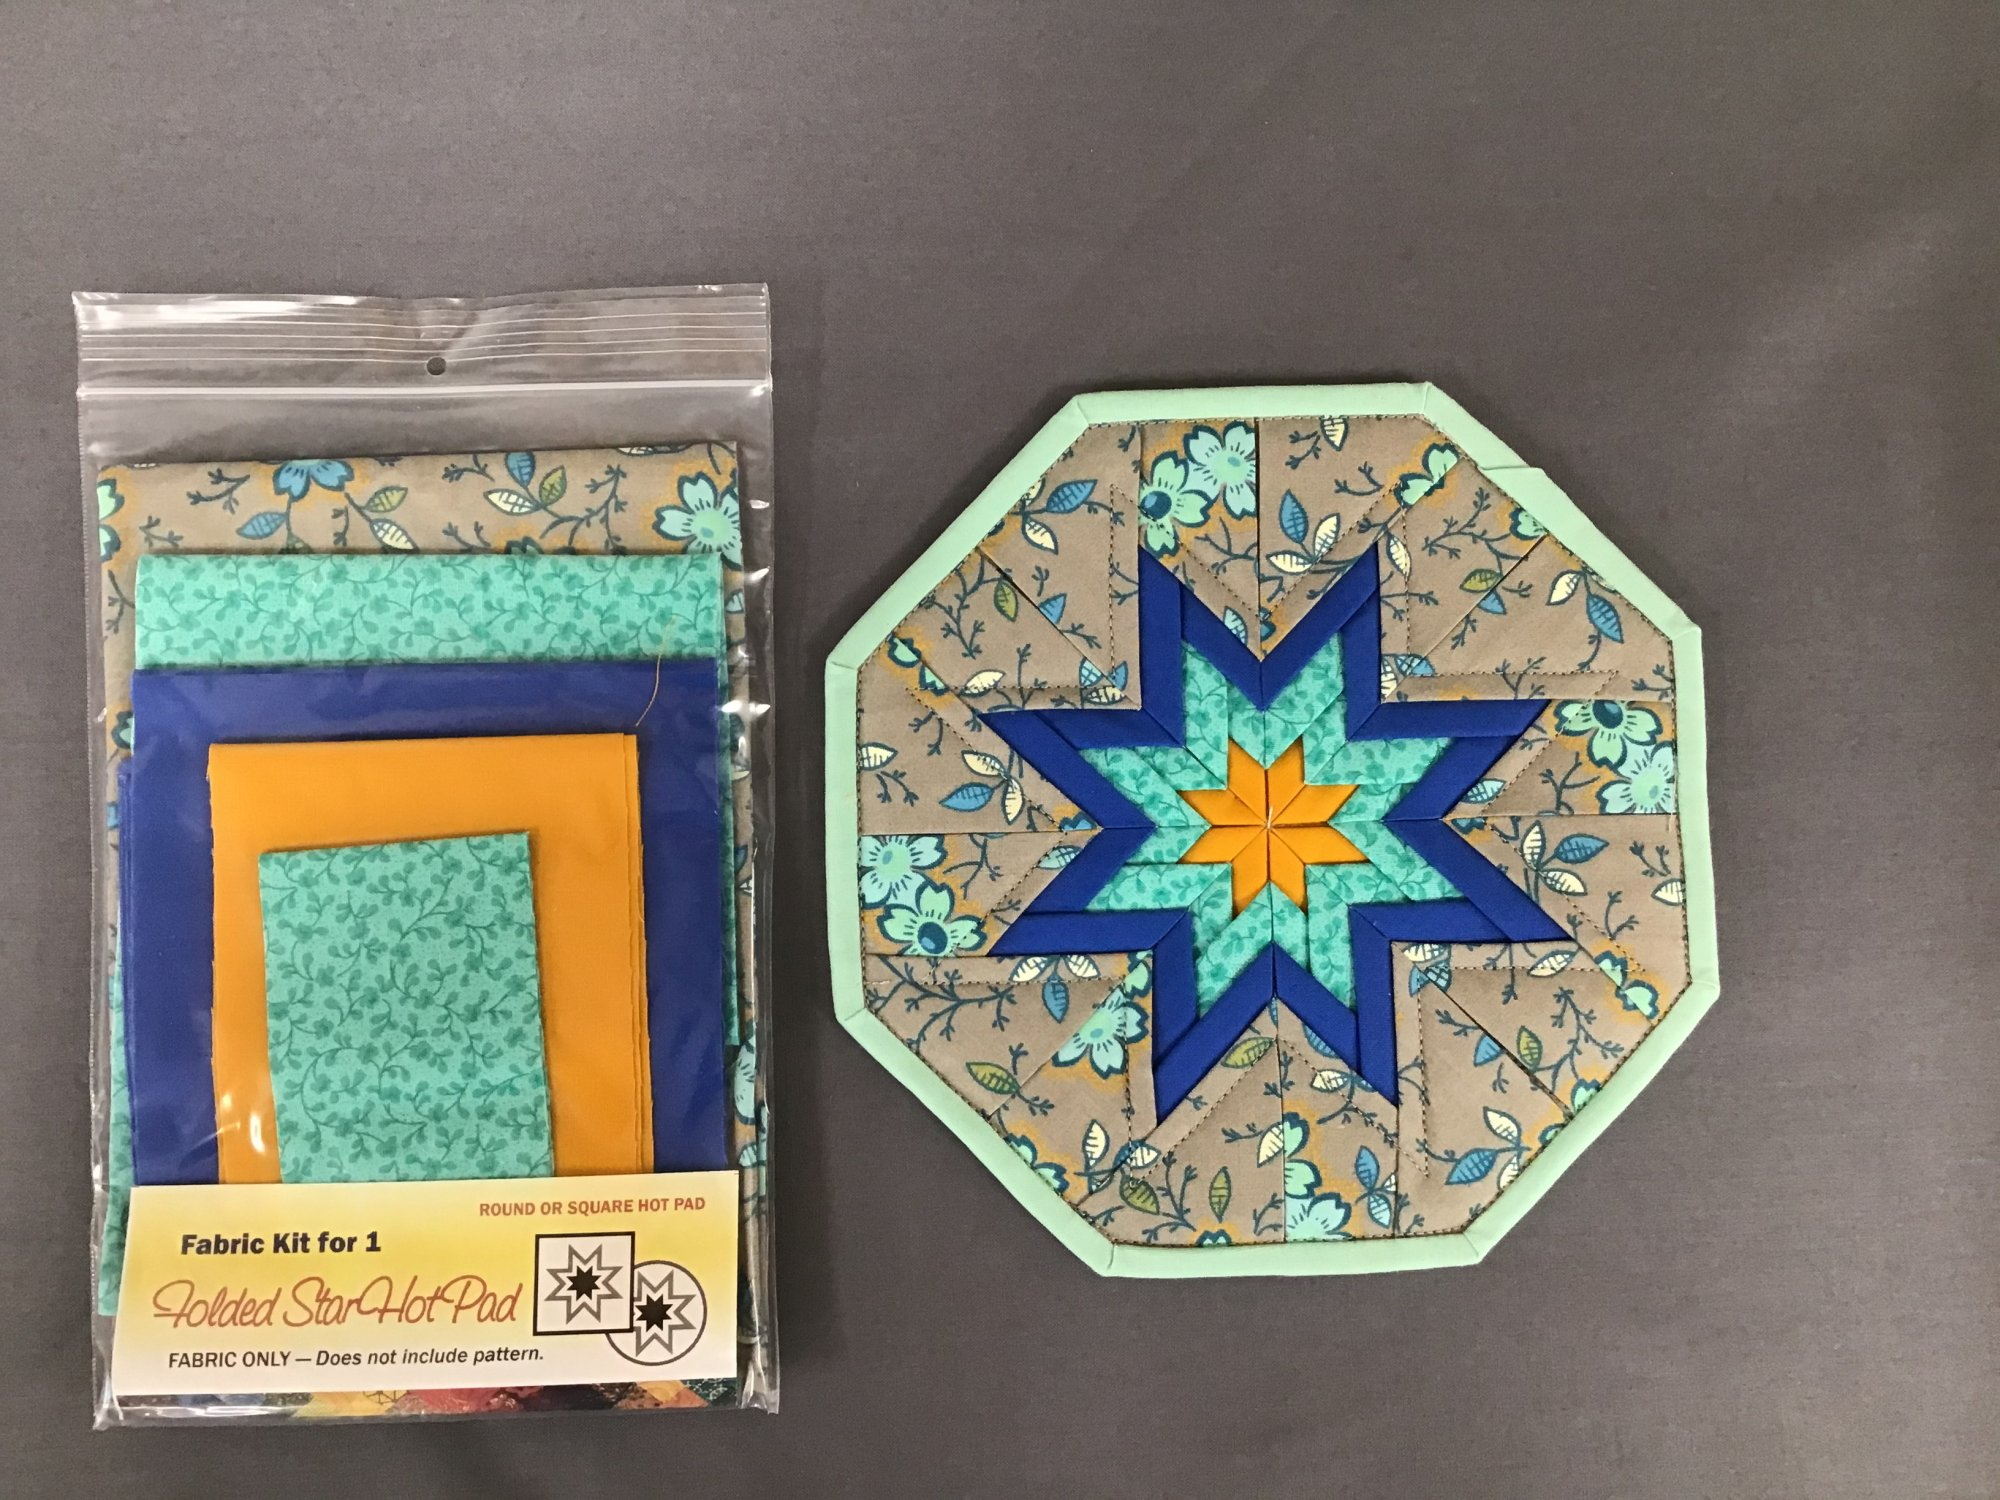 Folded Star Hot Pad kits - Square or Octagon